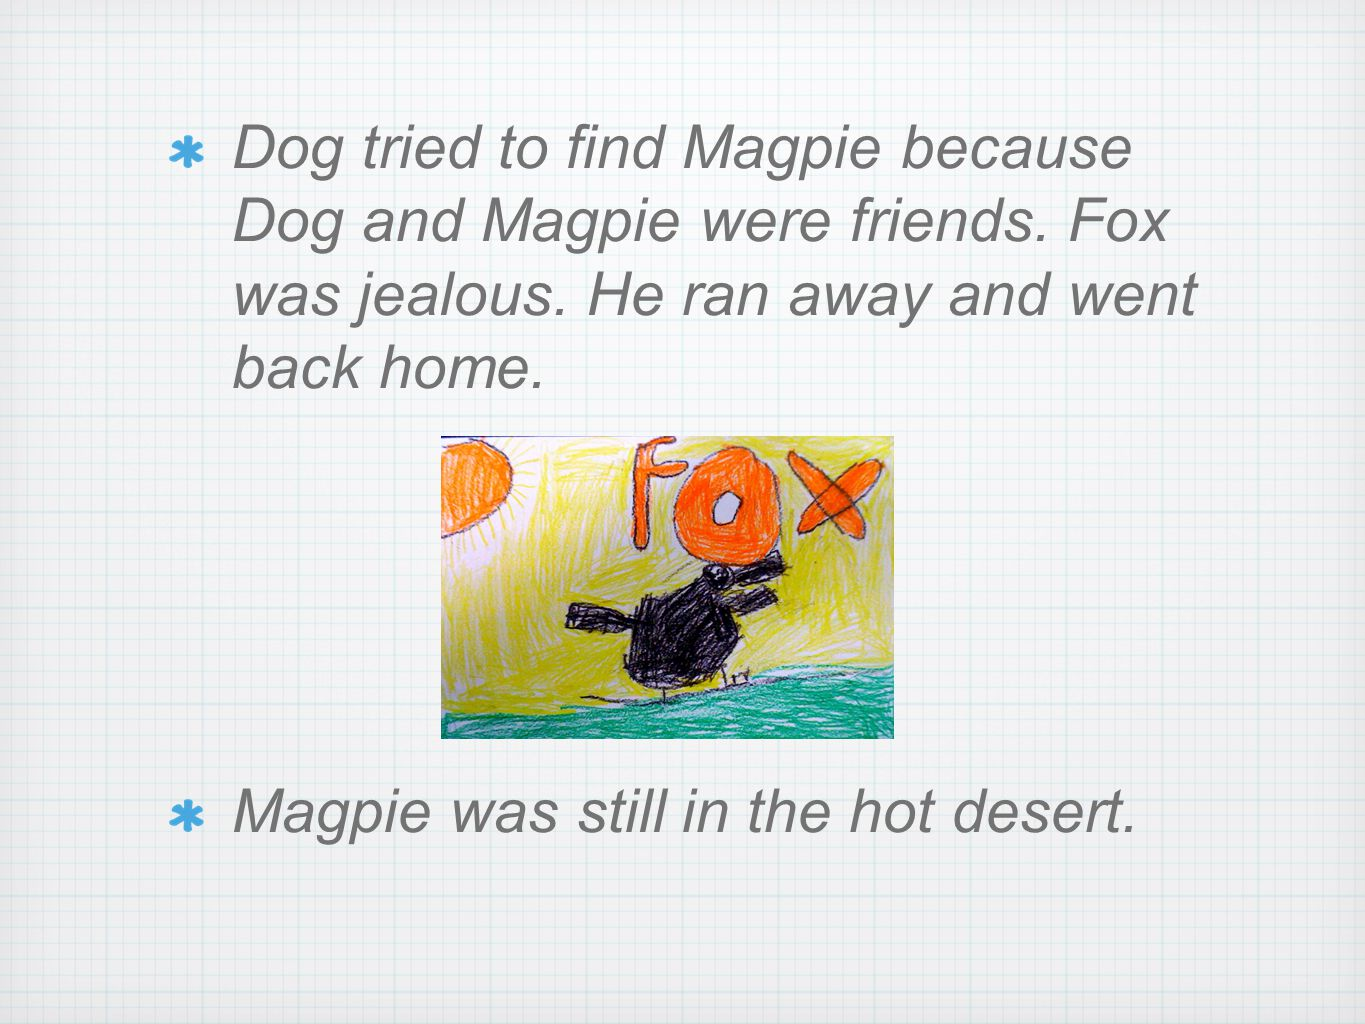 x Dog tried to find Magpie because Dog and Magpie were friends.